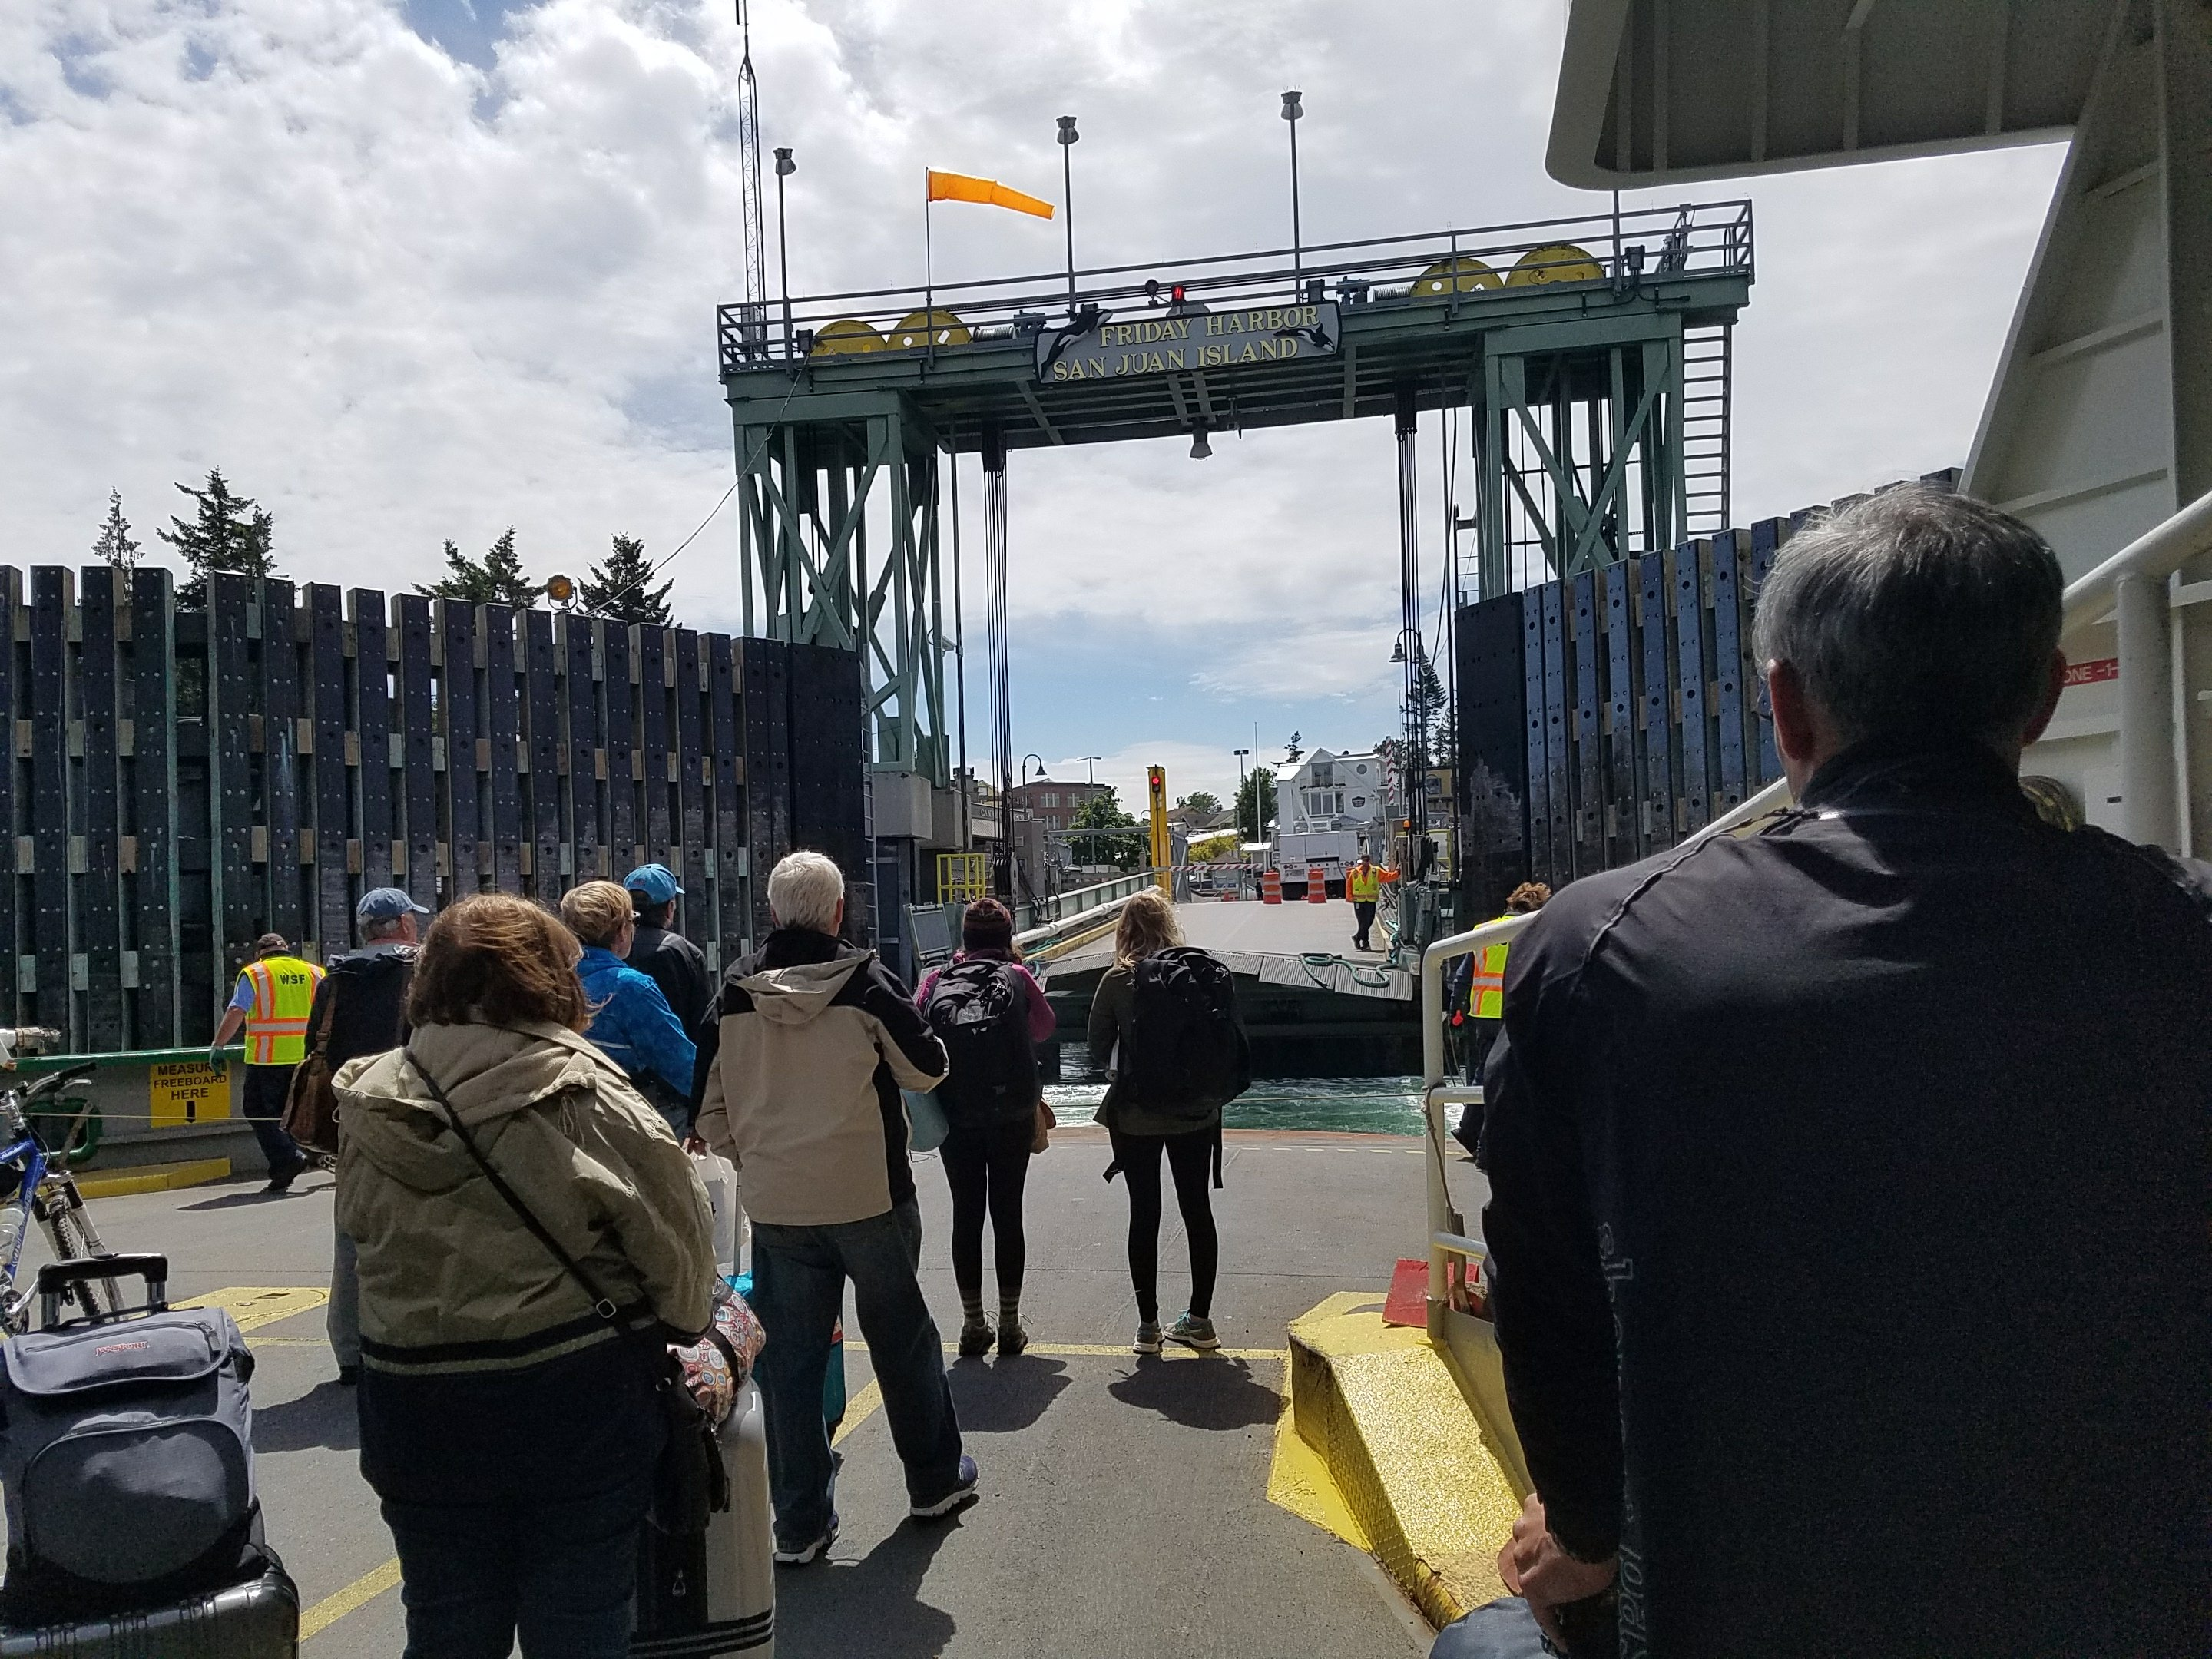 Days Seven and Eight: Victoria, BC to Friday Harbor